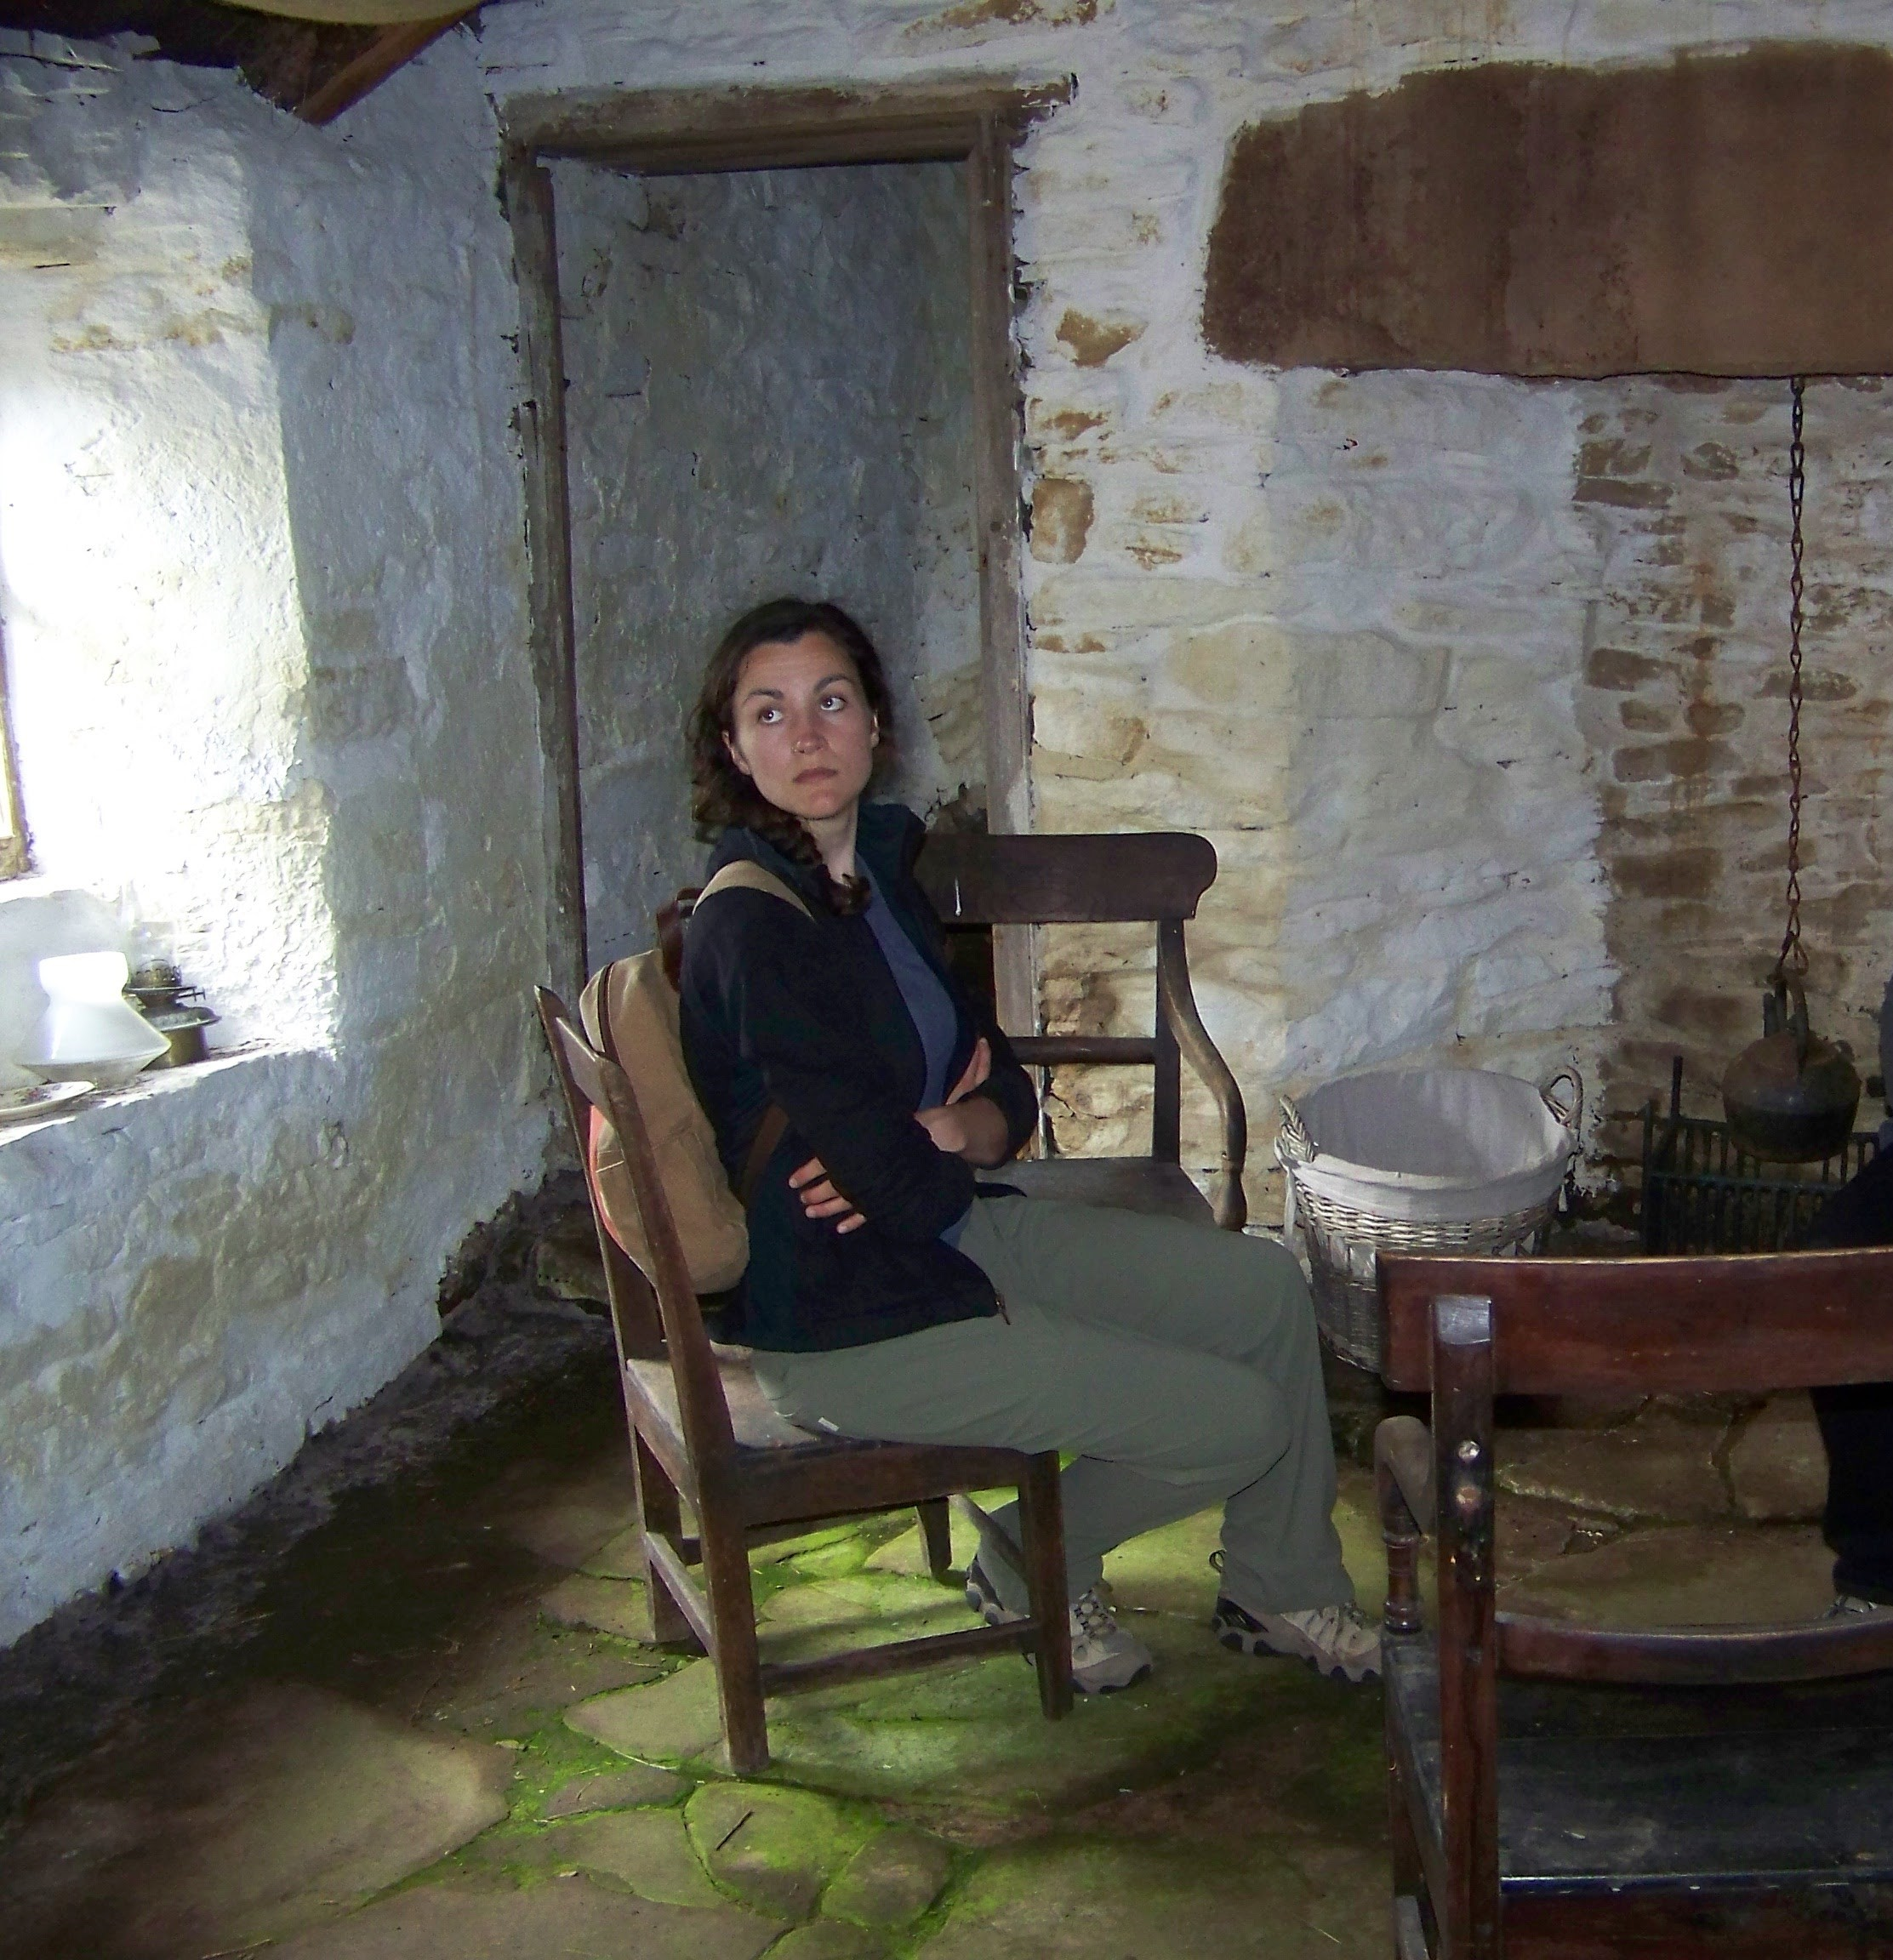 Woman sitting in an antique chair in the Craa's Nest croft museum, Hoy, Orkney